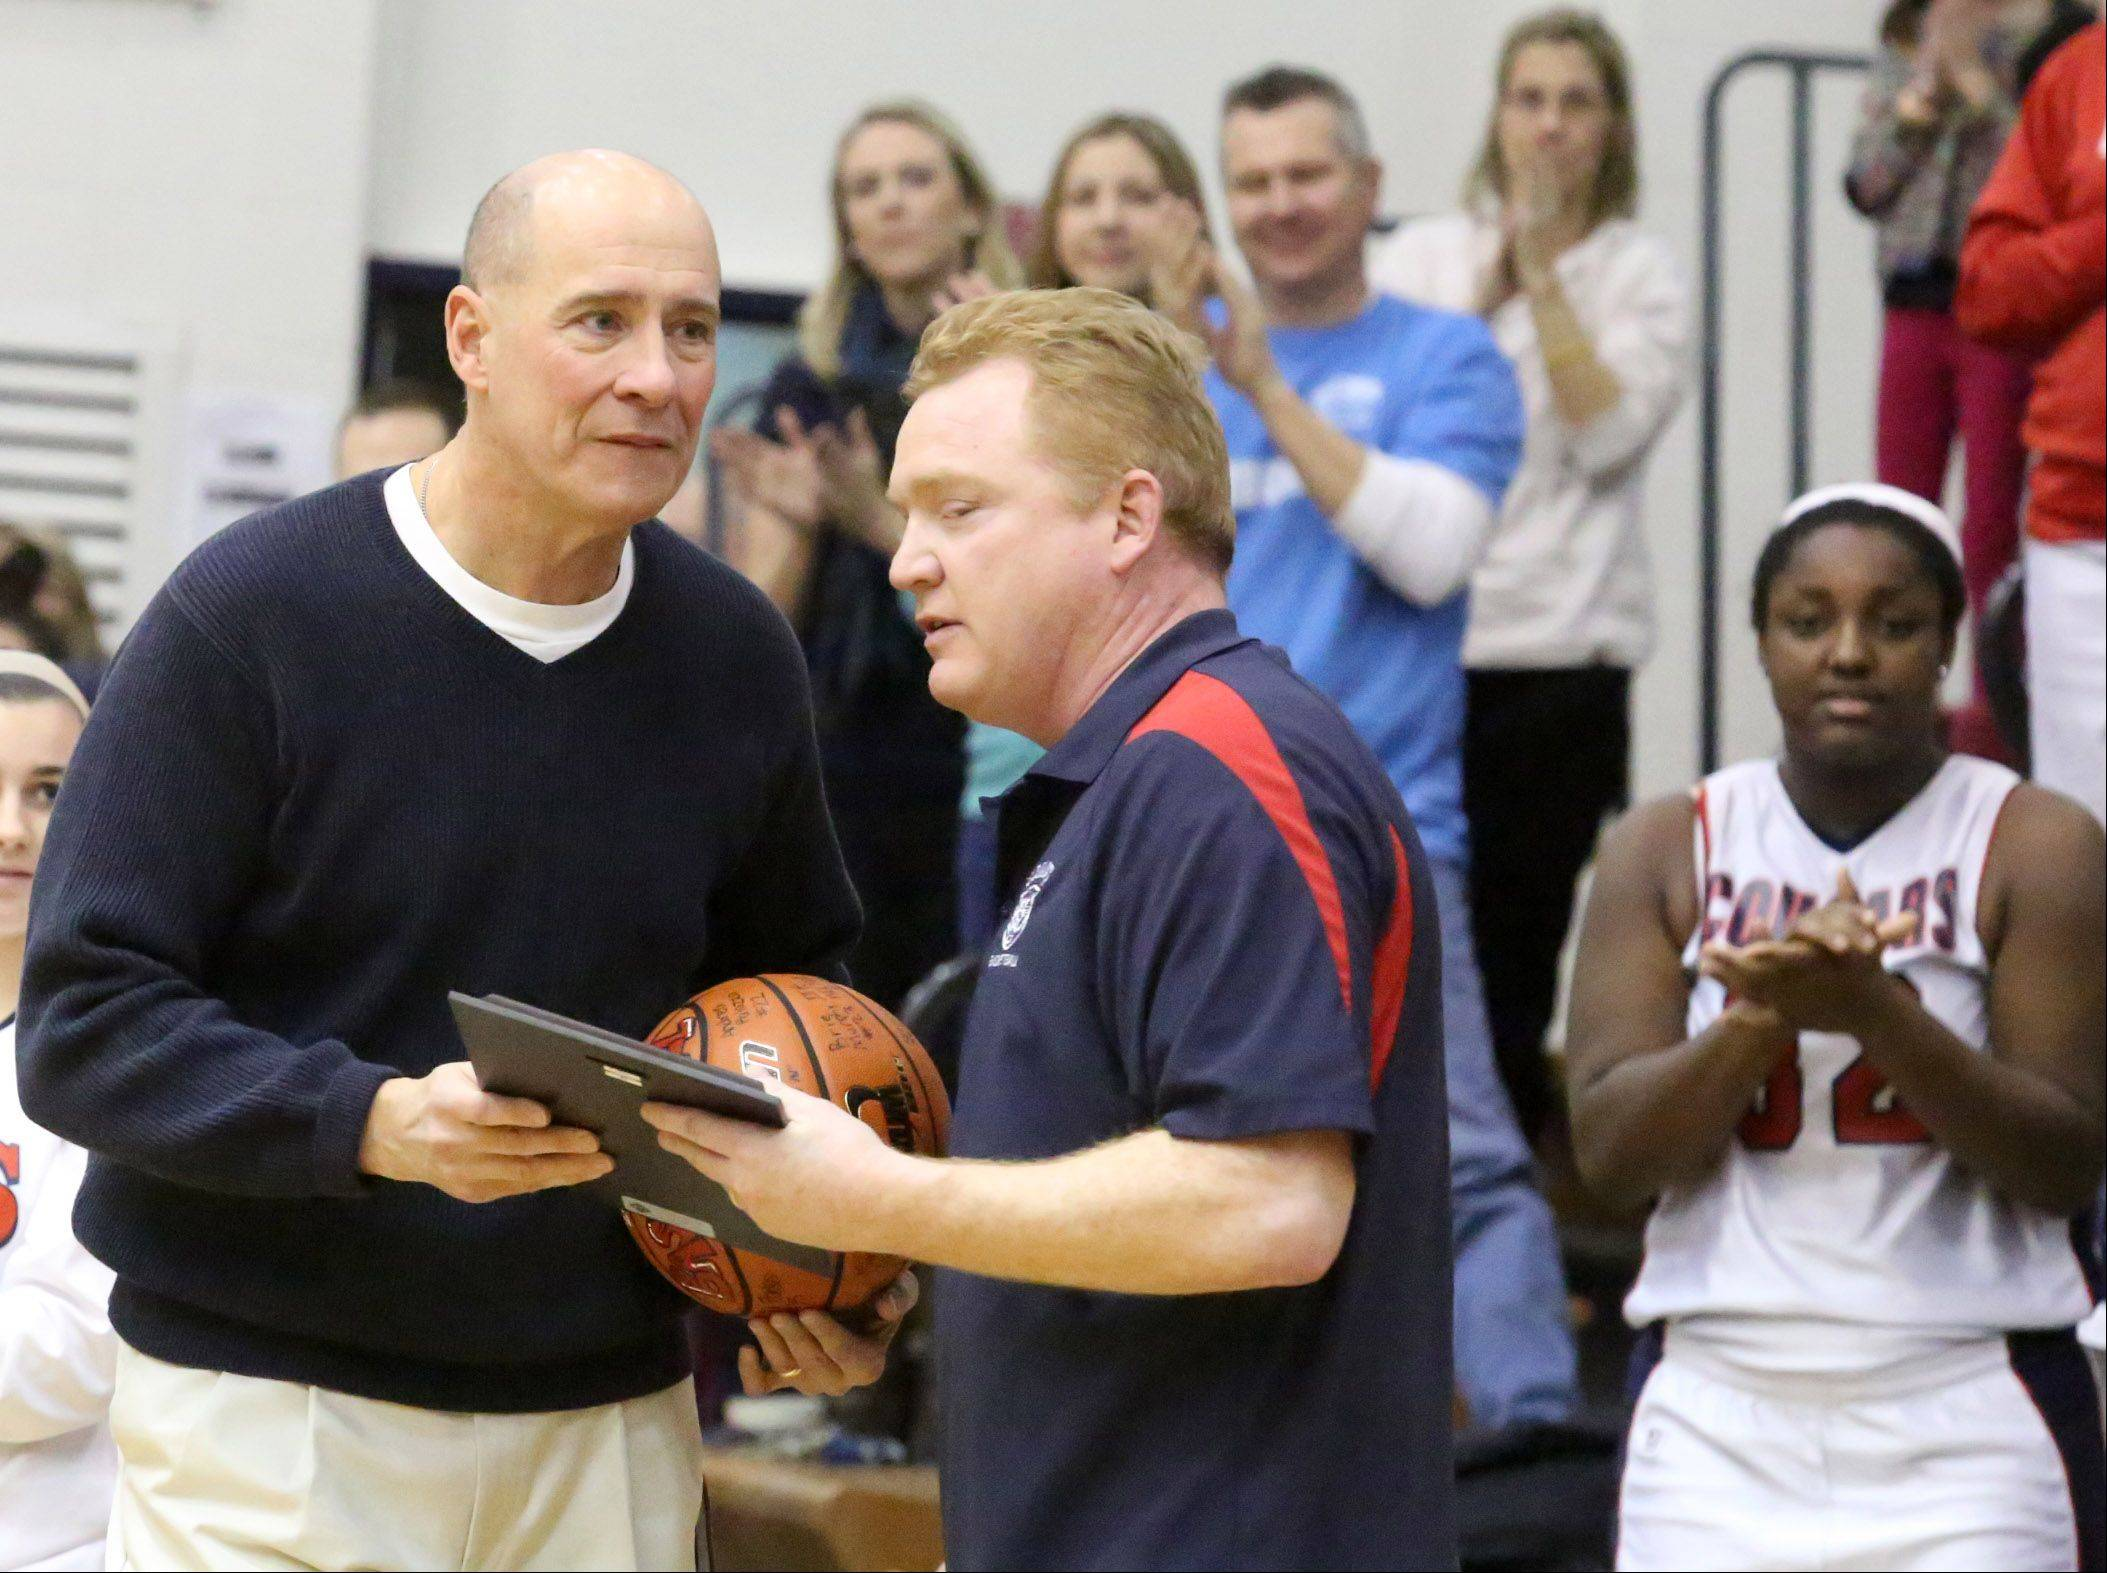 Conant girls basketball coach Dan Travers receives a plaque from athletic director John Kane on Saturday before a game with Crystal Lake South at Conant. Travers has coached high school basketball for 38 years.